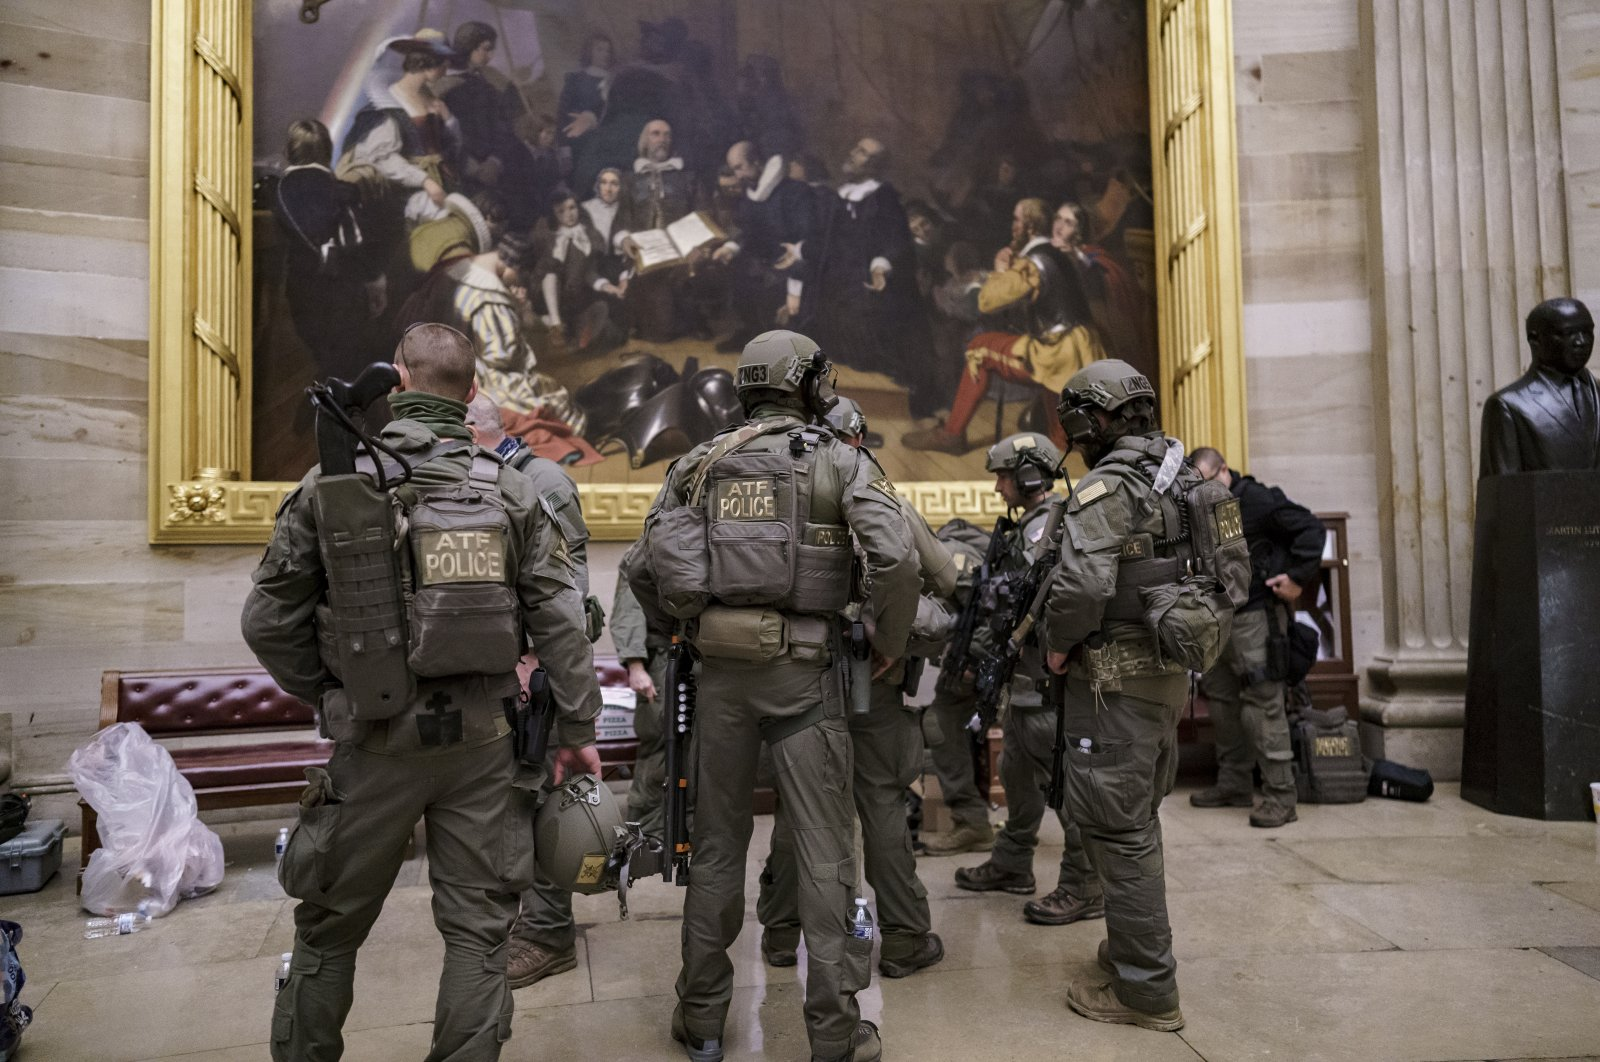 After violent protesters loyal to President Donald Trump stormed the U.S. Capitol, an ATF tactical team gathers in the Rotunda to provide security for the continuation of the joint session of the House and Senate to count the Electoral College votes cast in November's election, at the Capitol in Washington, D.C., U.S., Jan. 6, 2021. (AP Photo)